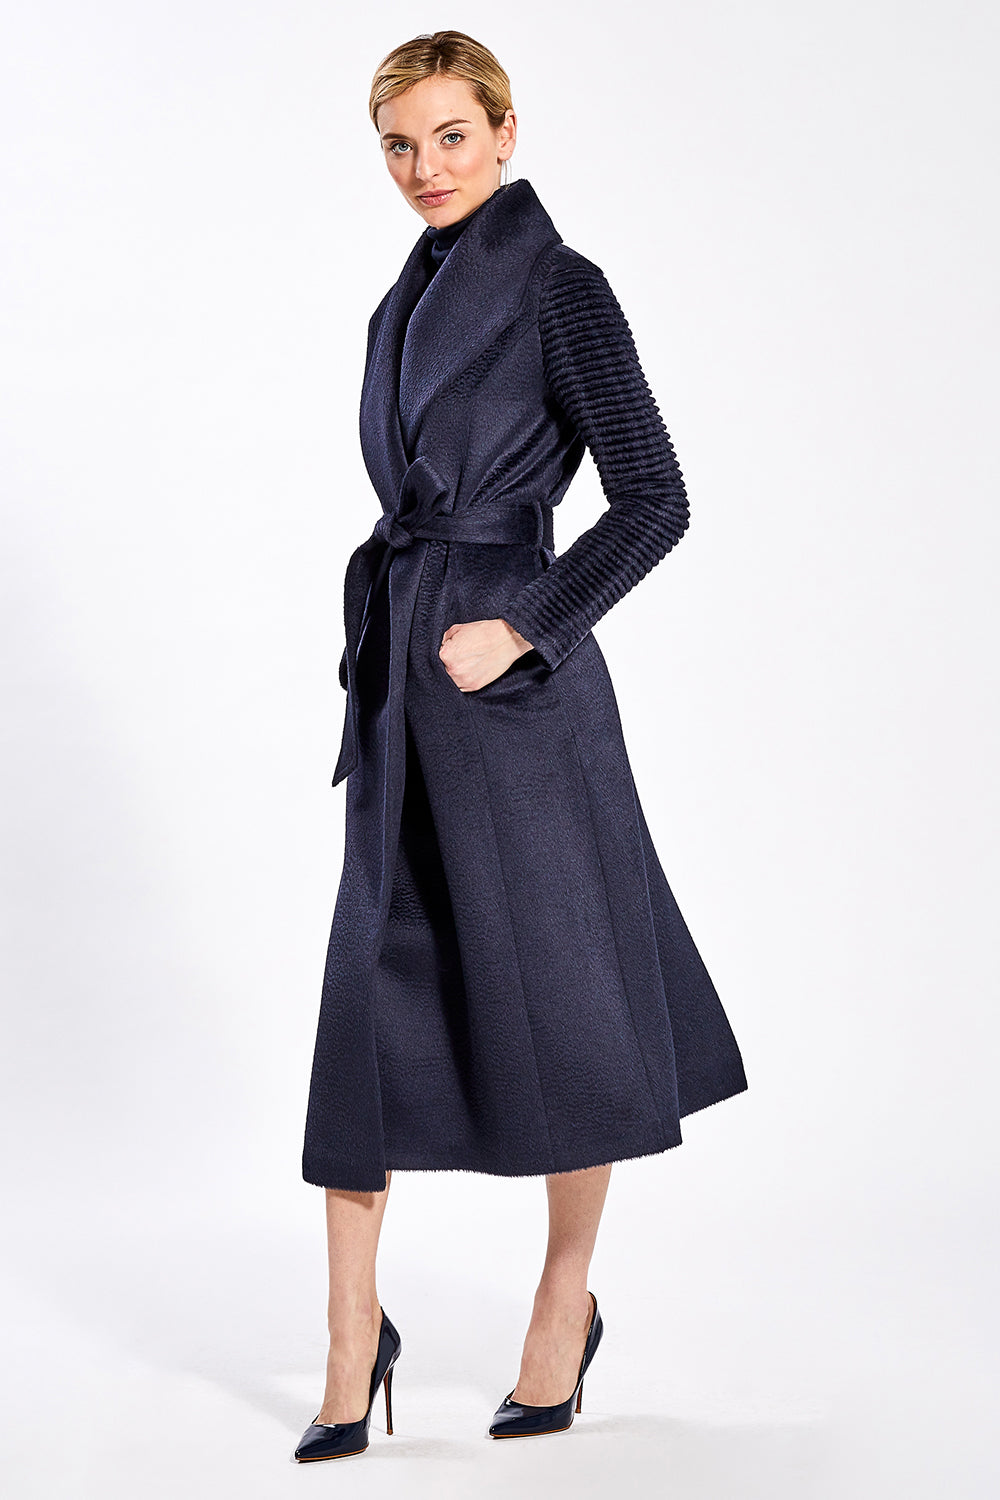 Sentaler Suri Alpaca Long Shawl Collar Wrap Coat with Ribbed Sleeves featured in Suri Alpaca and available in Navy. Seen from side.